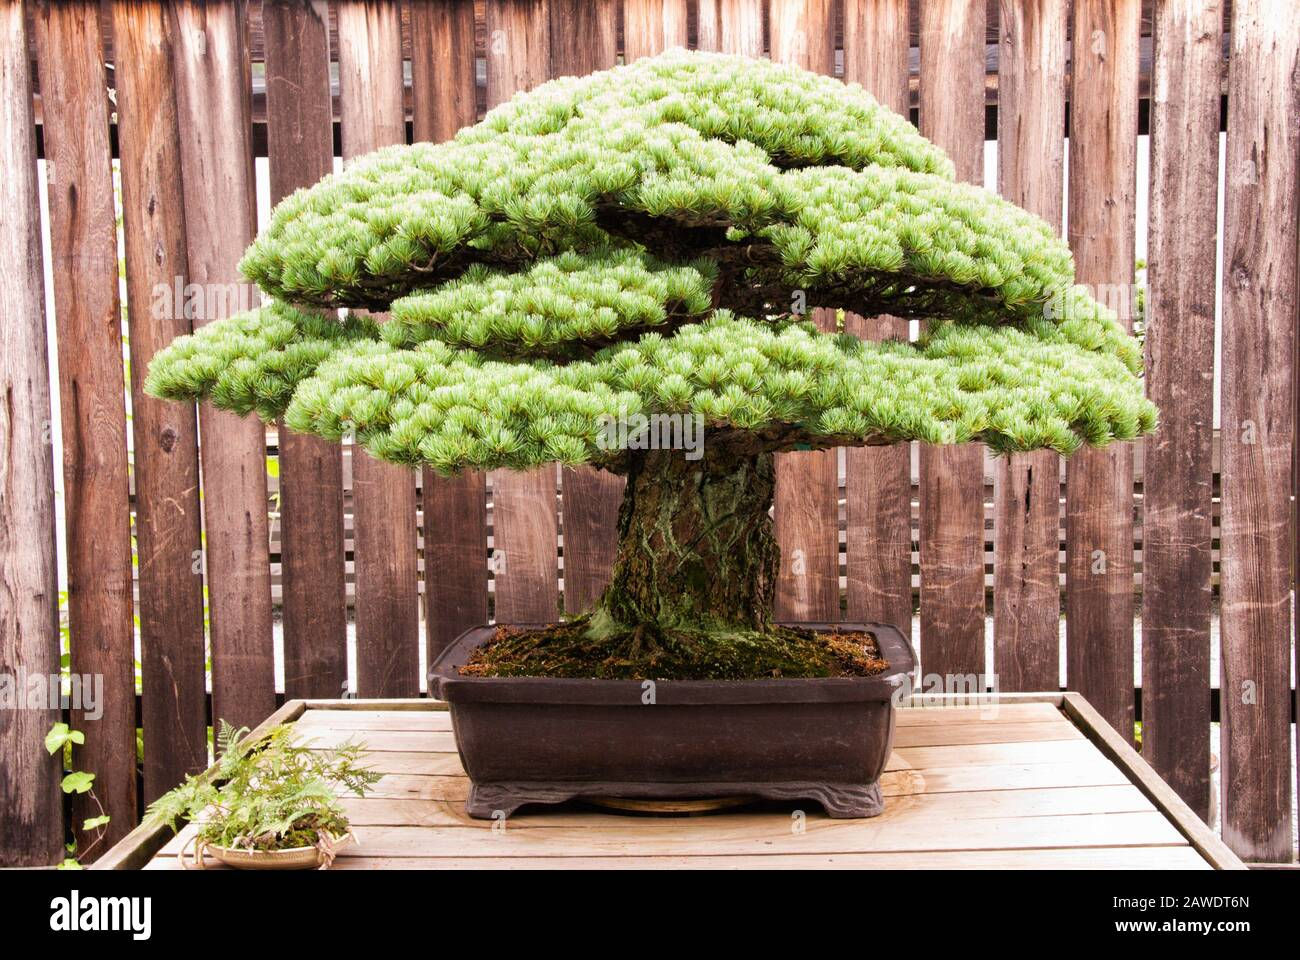 Miniature matured Japanese White Pine bonsai tree growing in a potted container. Aka Pinus Parviflora. Stock Photo